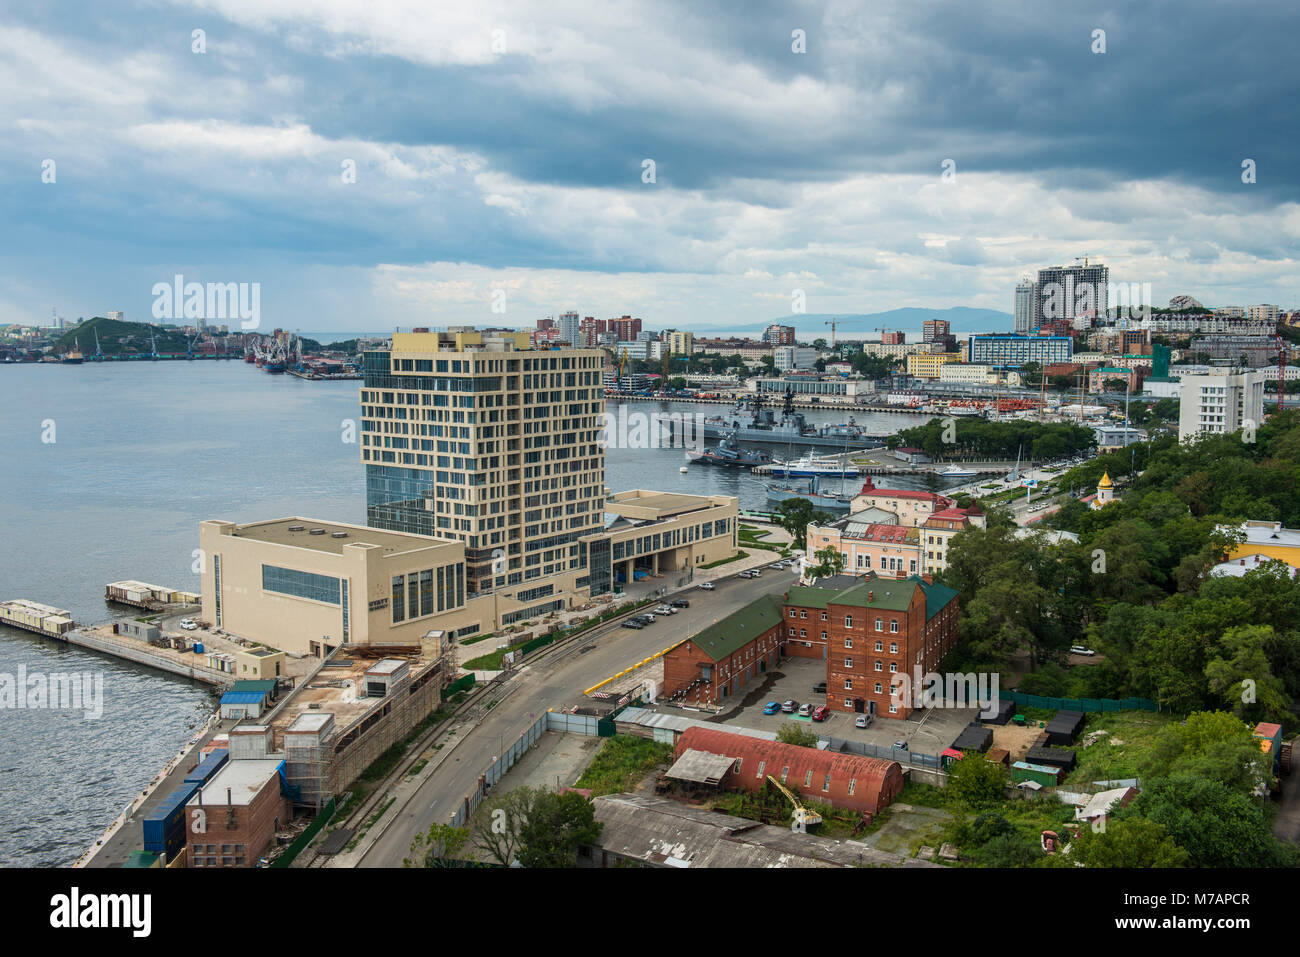 Outlook over Vladivostok, Russia - Stock Image